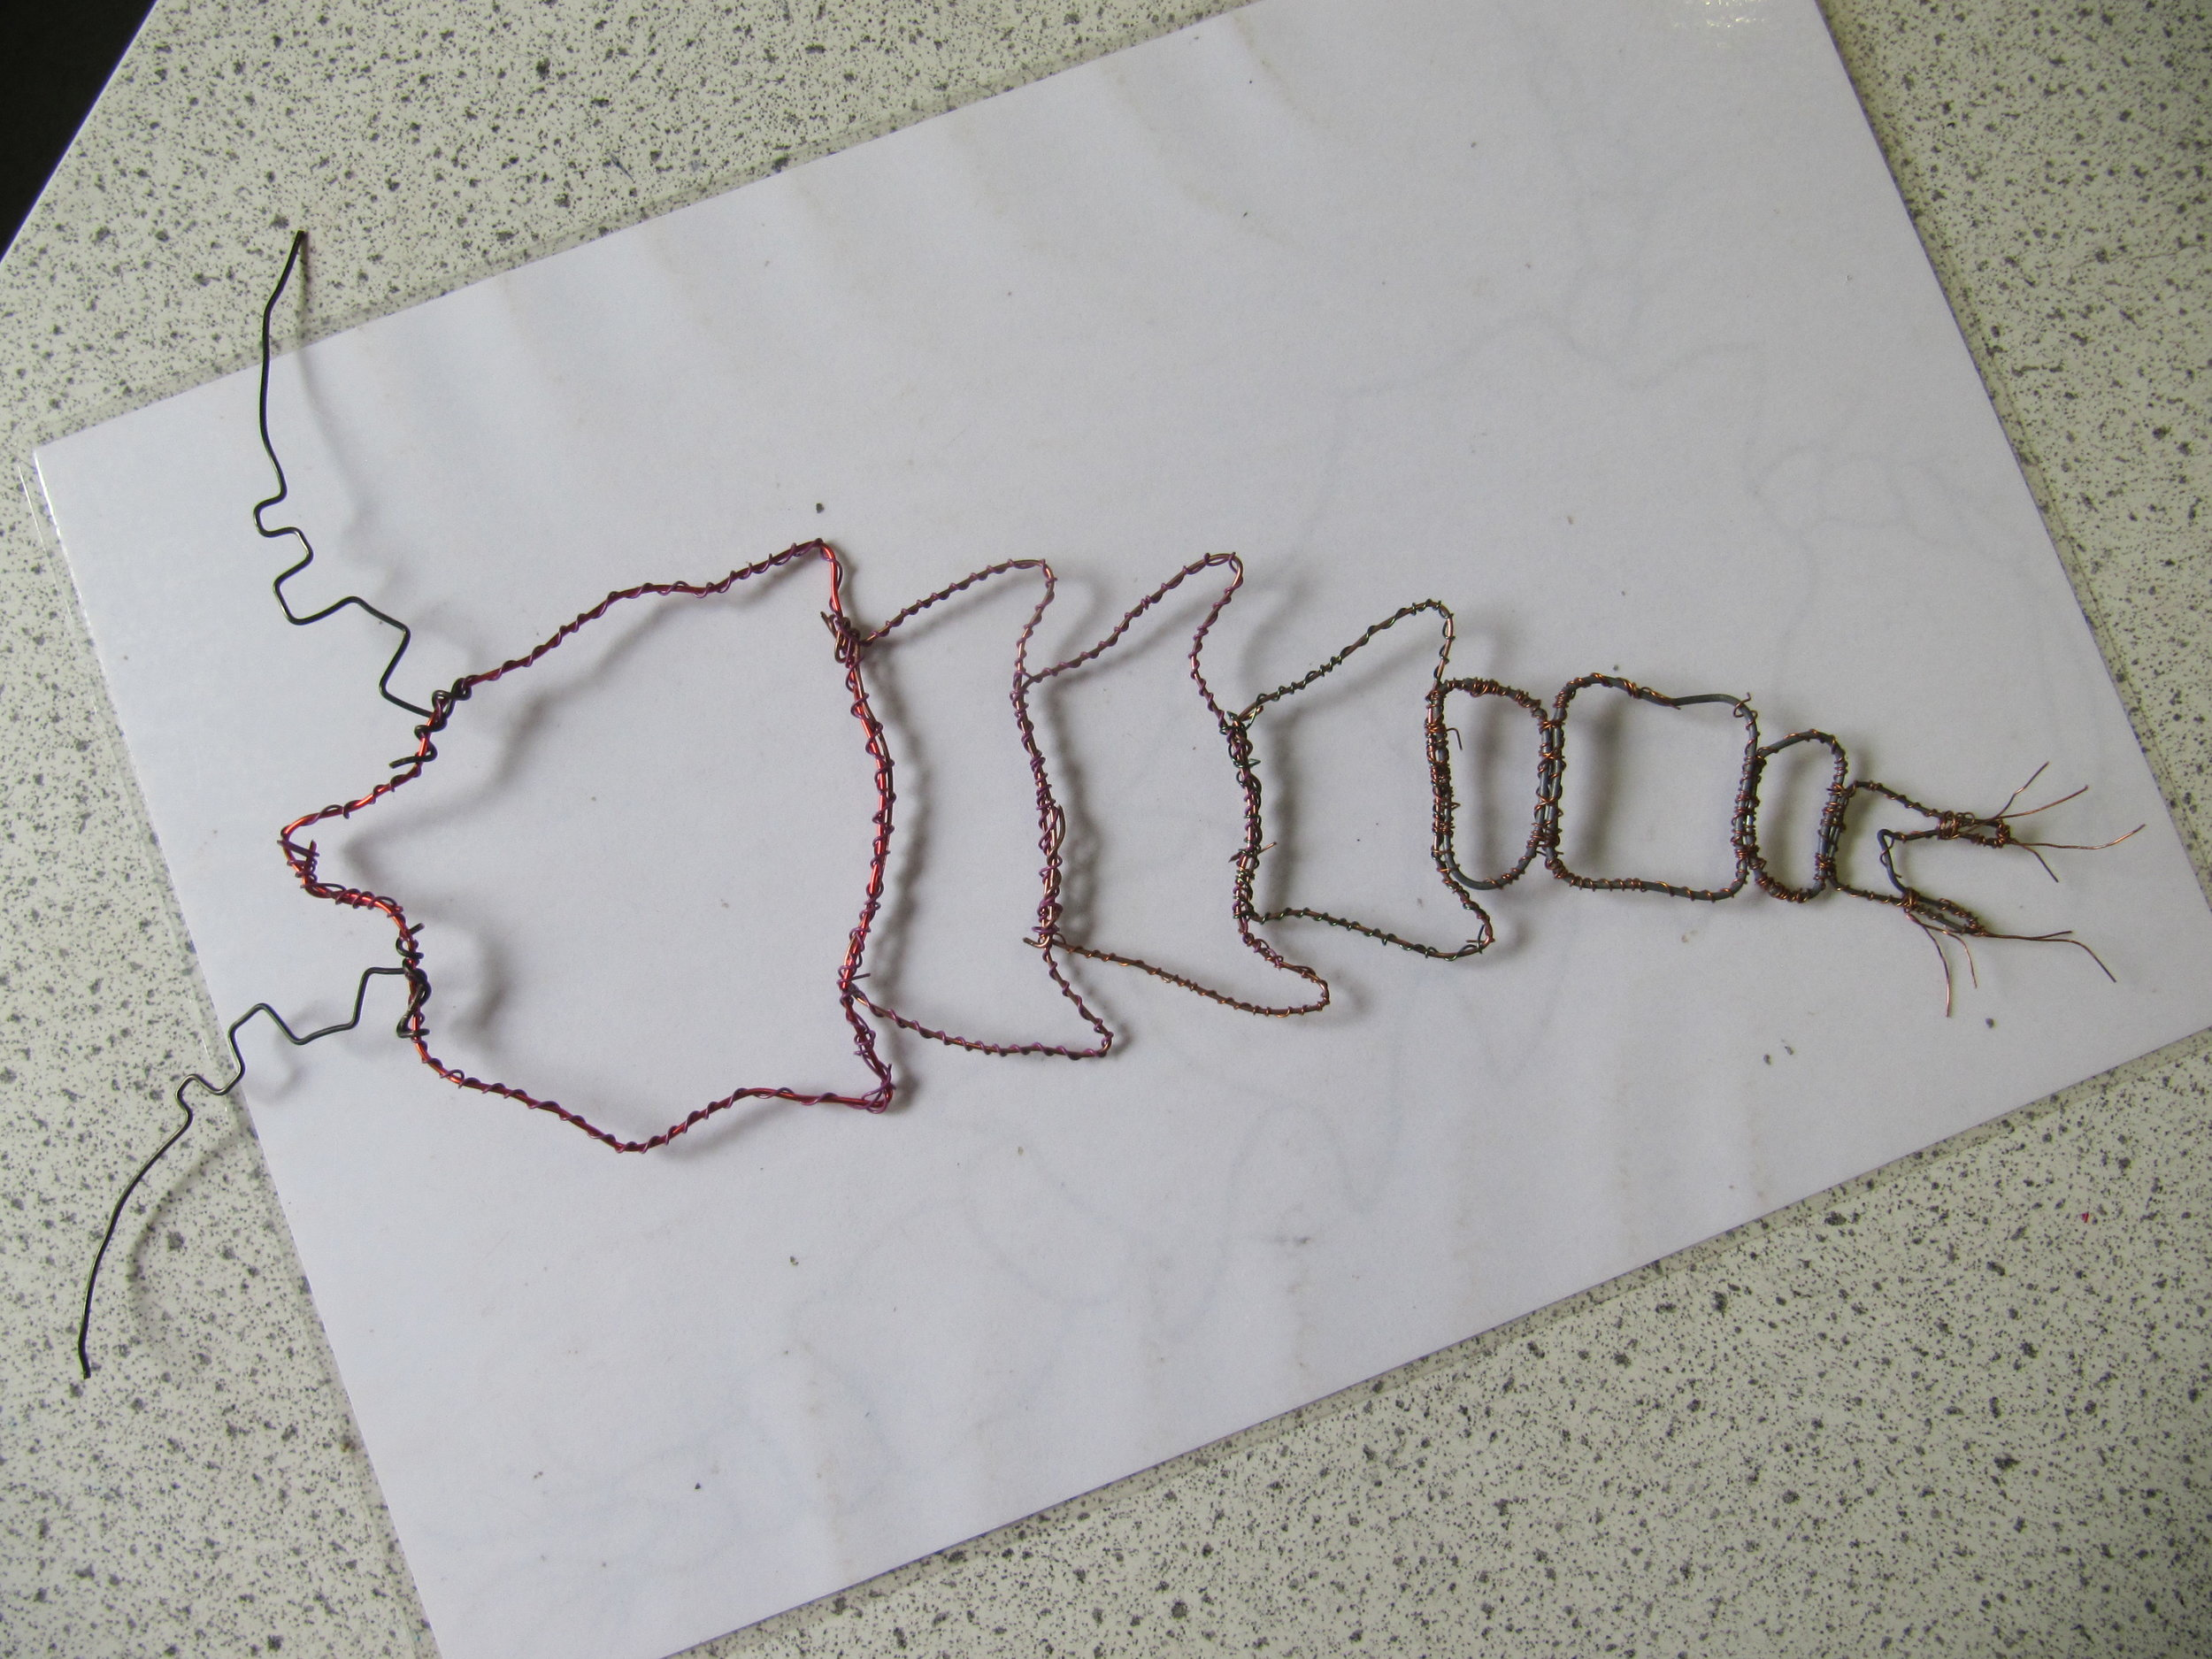 Wire Woodlouse by Yr 13 helper - Bishops Wordsworth School